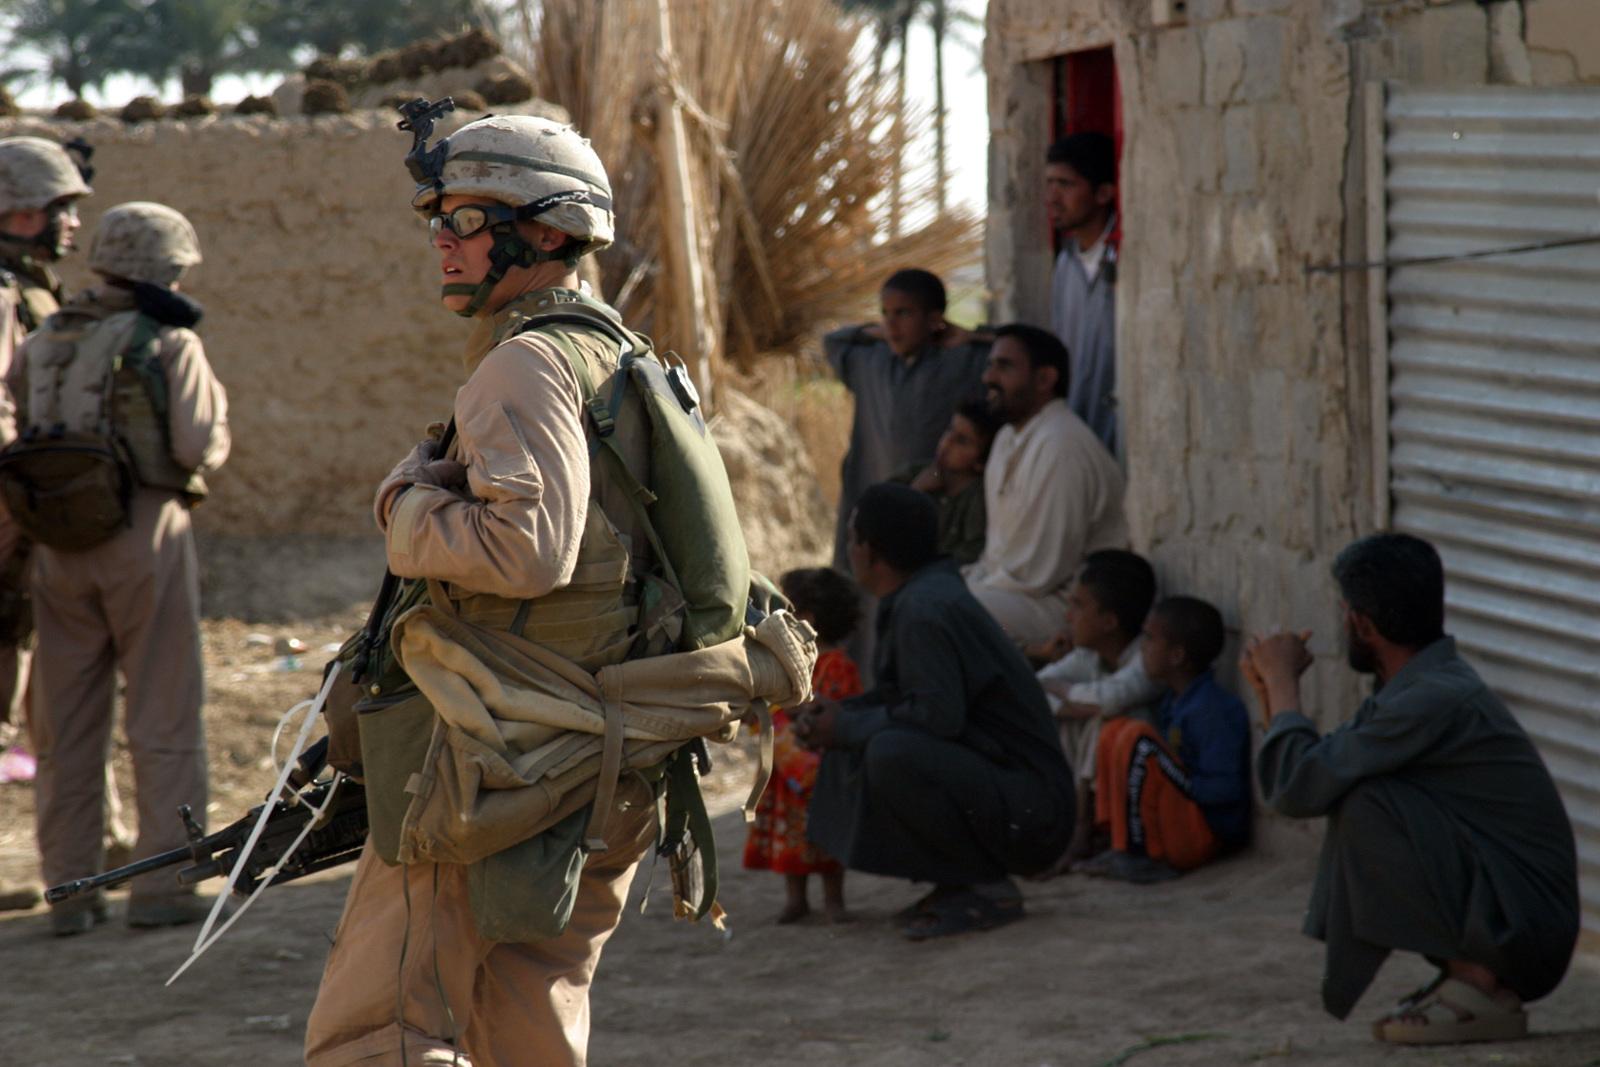 U.S. Marien Corps Lance CPL. Ian M. Taylor from Port Orchard, Wash. with 3rd Platoon, E Company, 2nd Battalion, 7th Marines patrols past some Iraqi civilians as he searches the surrounding area for Anti Iraqi Force activity during Operation Zaidon II on March 23, 2007. Task Force 2nd Battalion, 7th Marines is conducting Operation Zaidon II in Zaidon, Iraq to clear the city of Anti Iraqi Forces and deny them further use of the area in the future. Regimental Combat Team 6 is deployed with Multi National Forces-West in support of Operation Iraqi Freedom in the Anbar Province of Iraq to develop Iraqi Security Forces, facilitate the development of official rule of law through democratic...